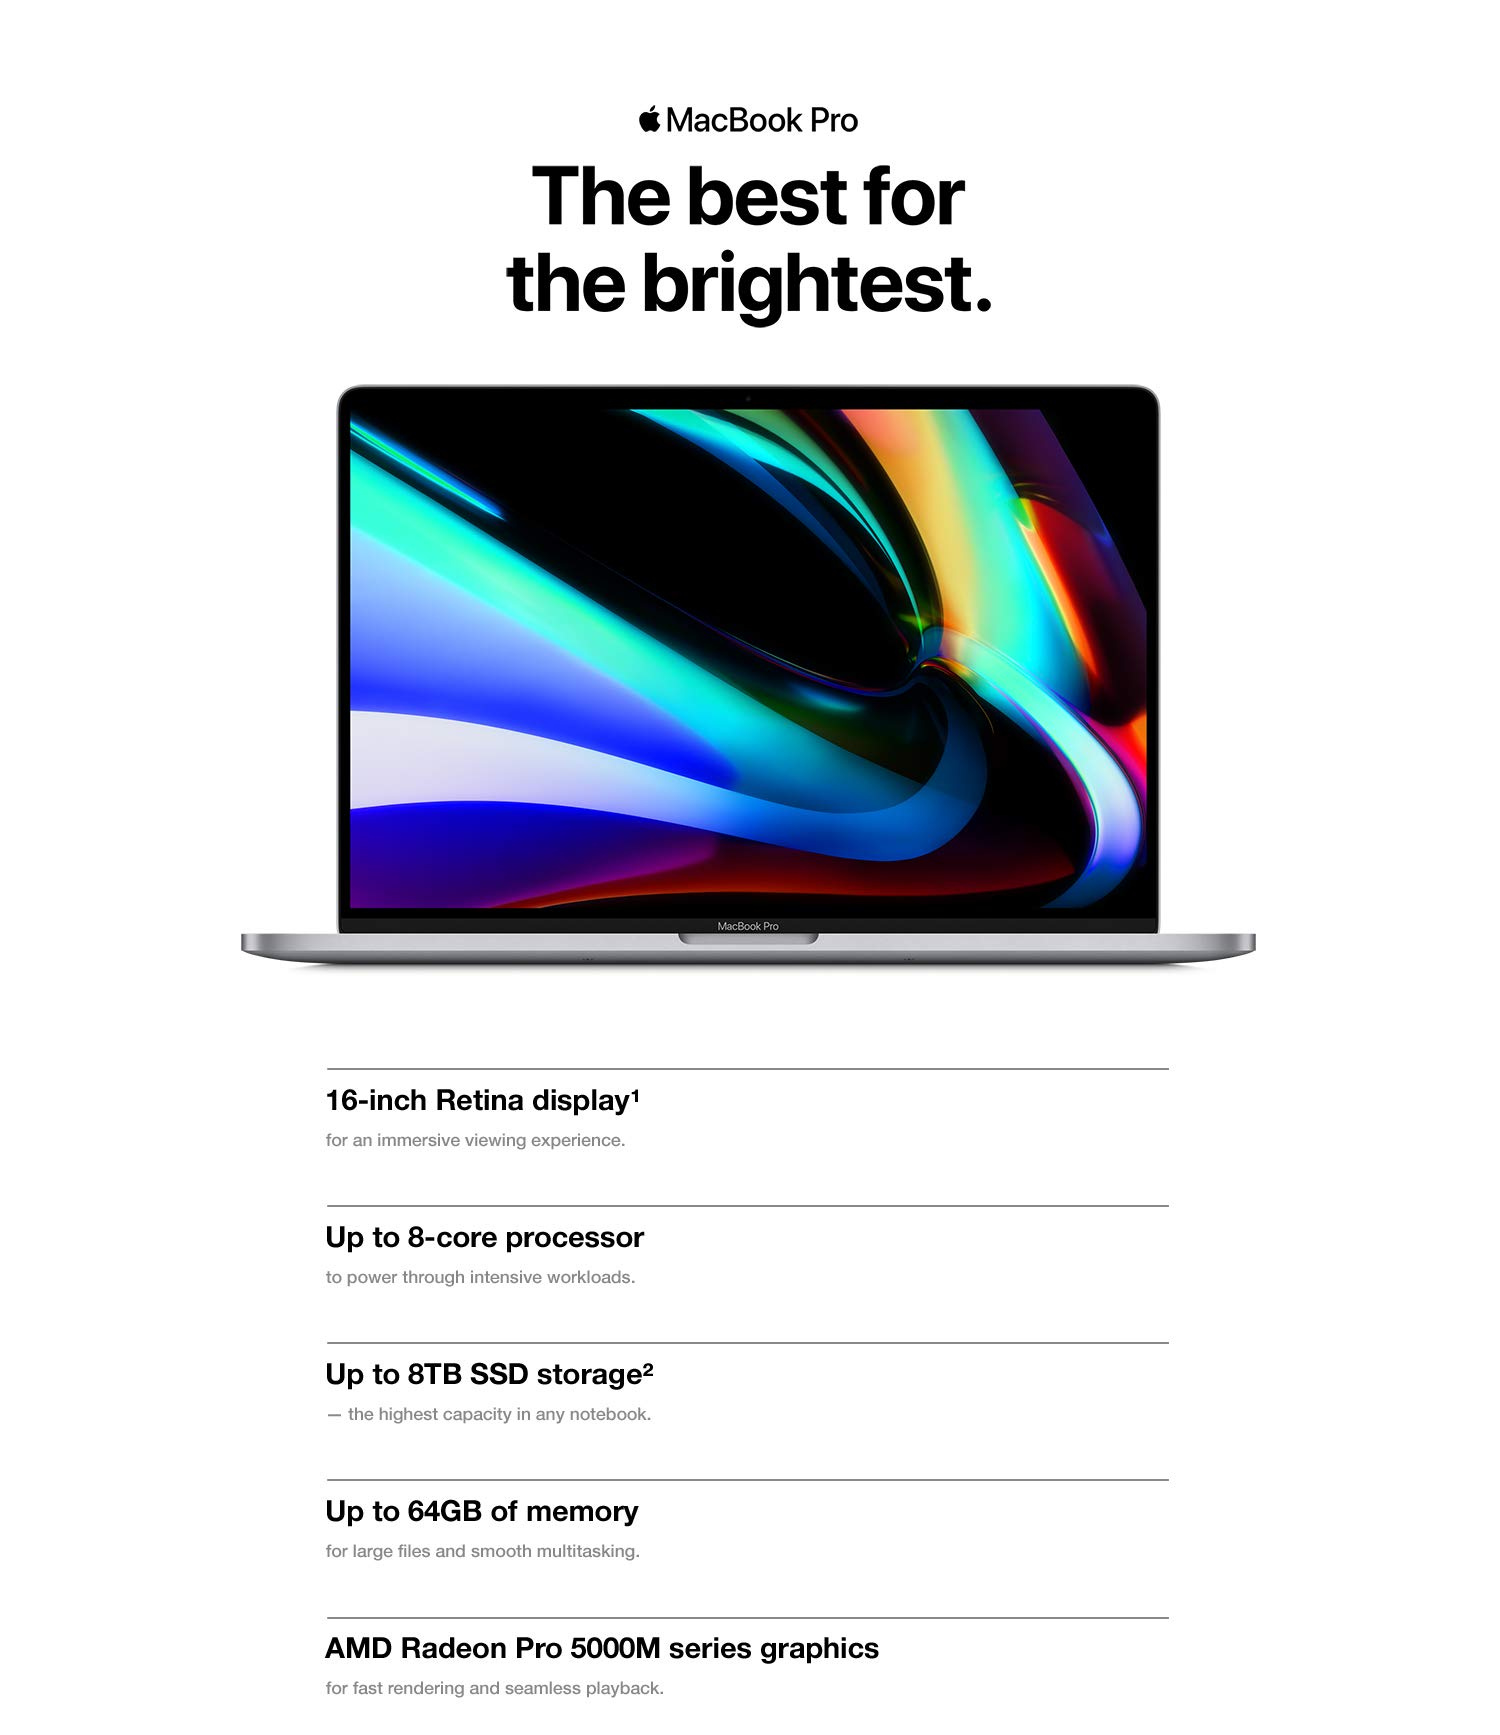 MacBook Pro. The best for the brightest. 16-inch Retina display for an immersive viewing experience.  Up to 8-core processor to power through intensive workloads. Up to 8TB SSD storage - the highest capacity in any notebook. Up to 64GB of memory for large files and smooth multitasking. AMD Radeon Pro 5000M series graphics for fast rendering and seamless playback.